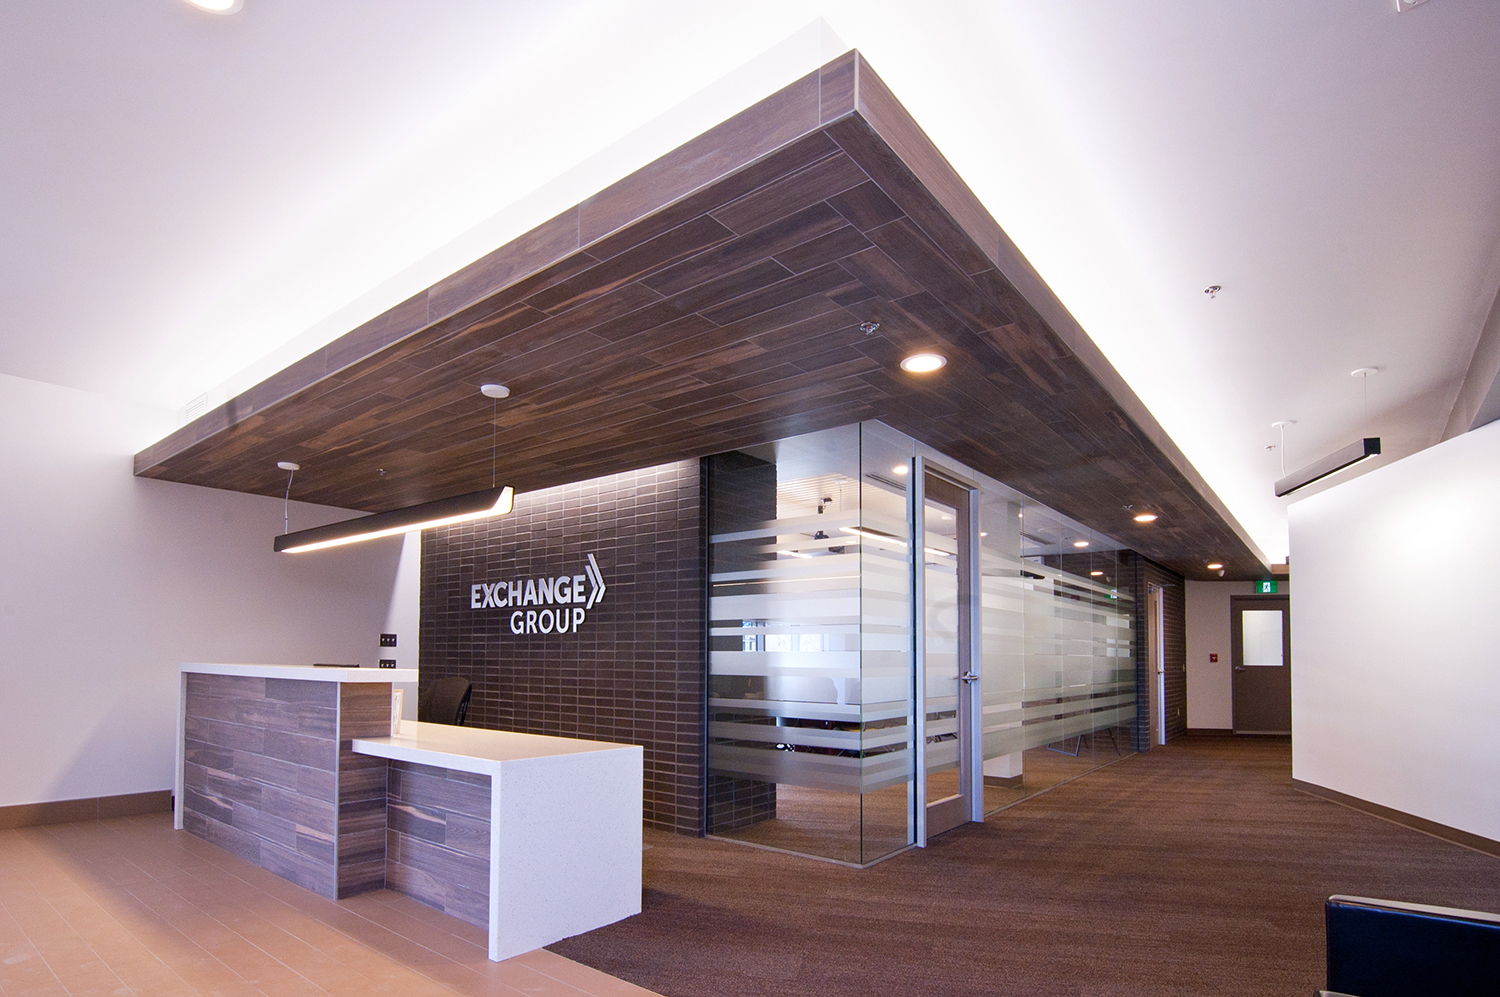 Exchange Group Offices, interior photo of reception / Photo: Derrick Finch